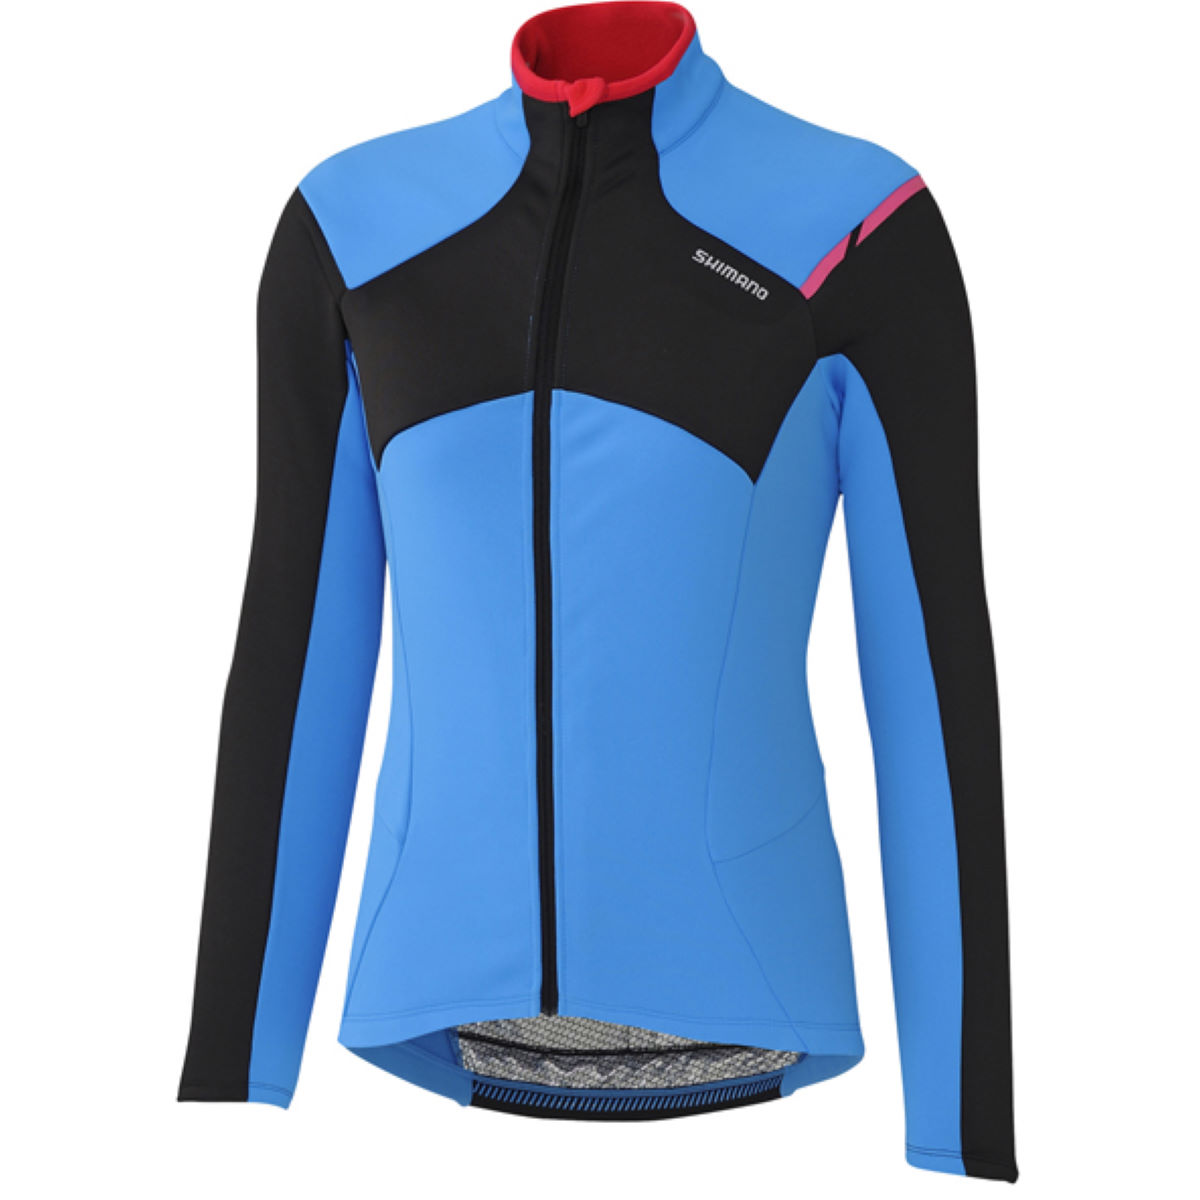 Maillot Femme Shimano Thermal (hiver) - Extra Large Bleu Maillots